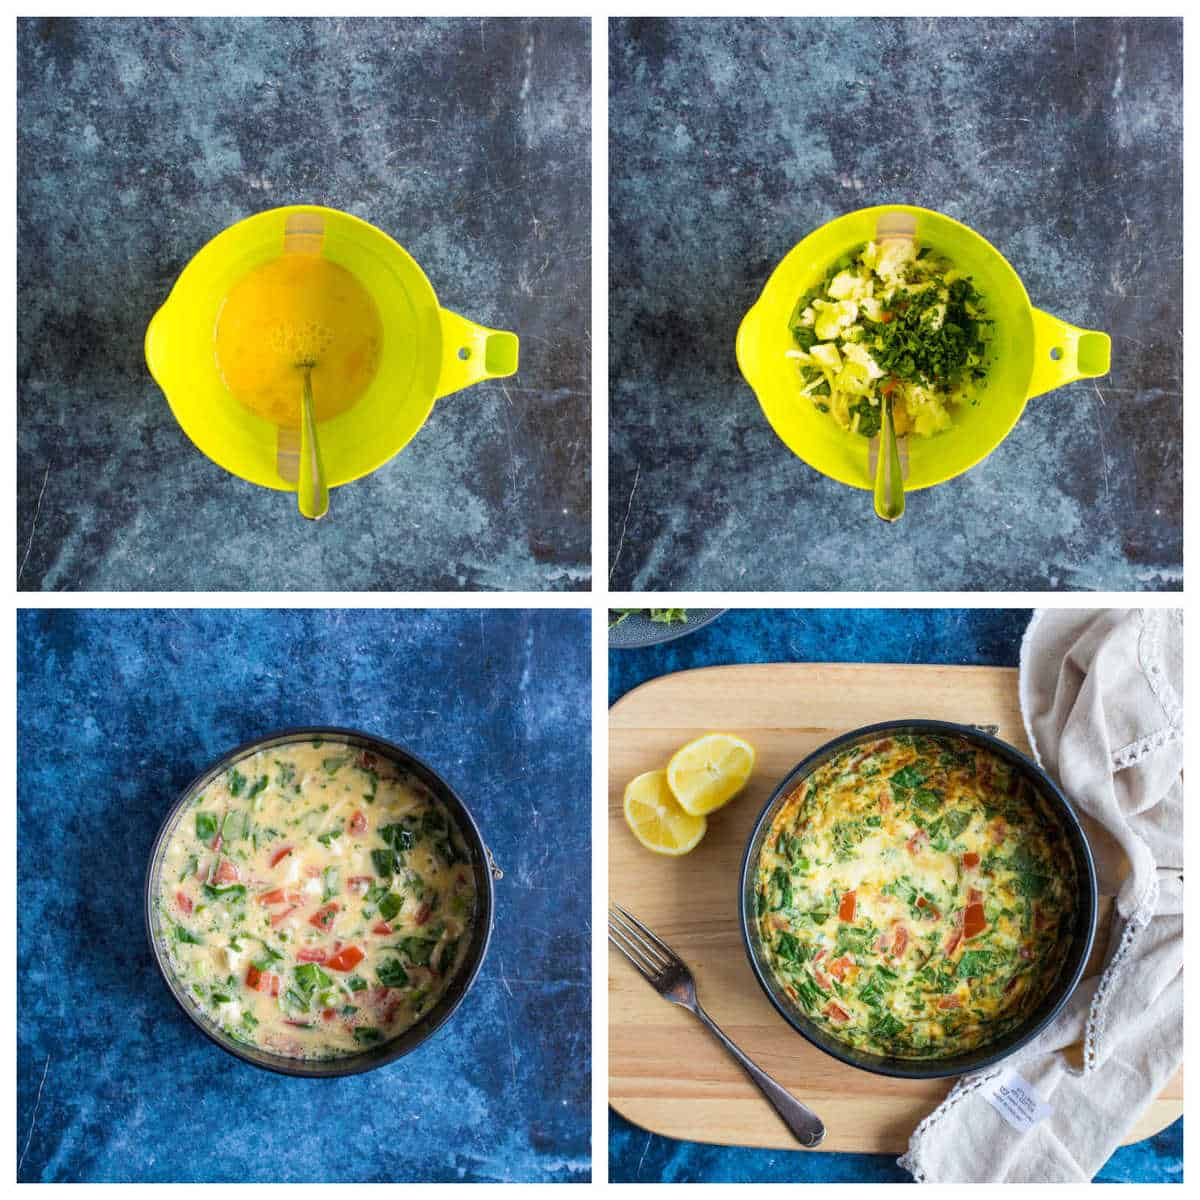 Step by step photo instructions for making air fryer breakfast frittata.